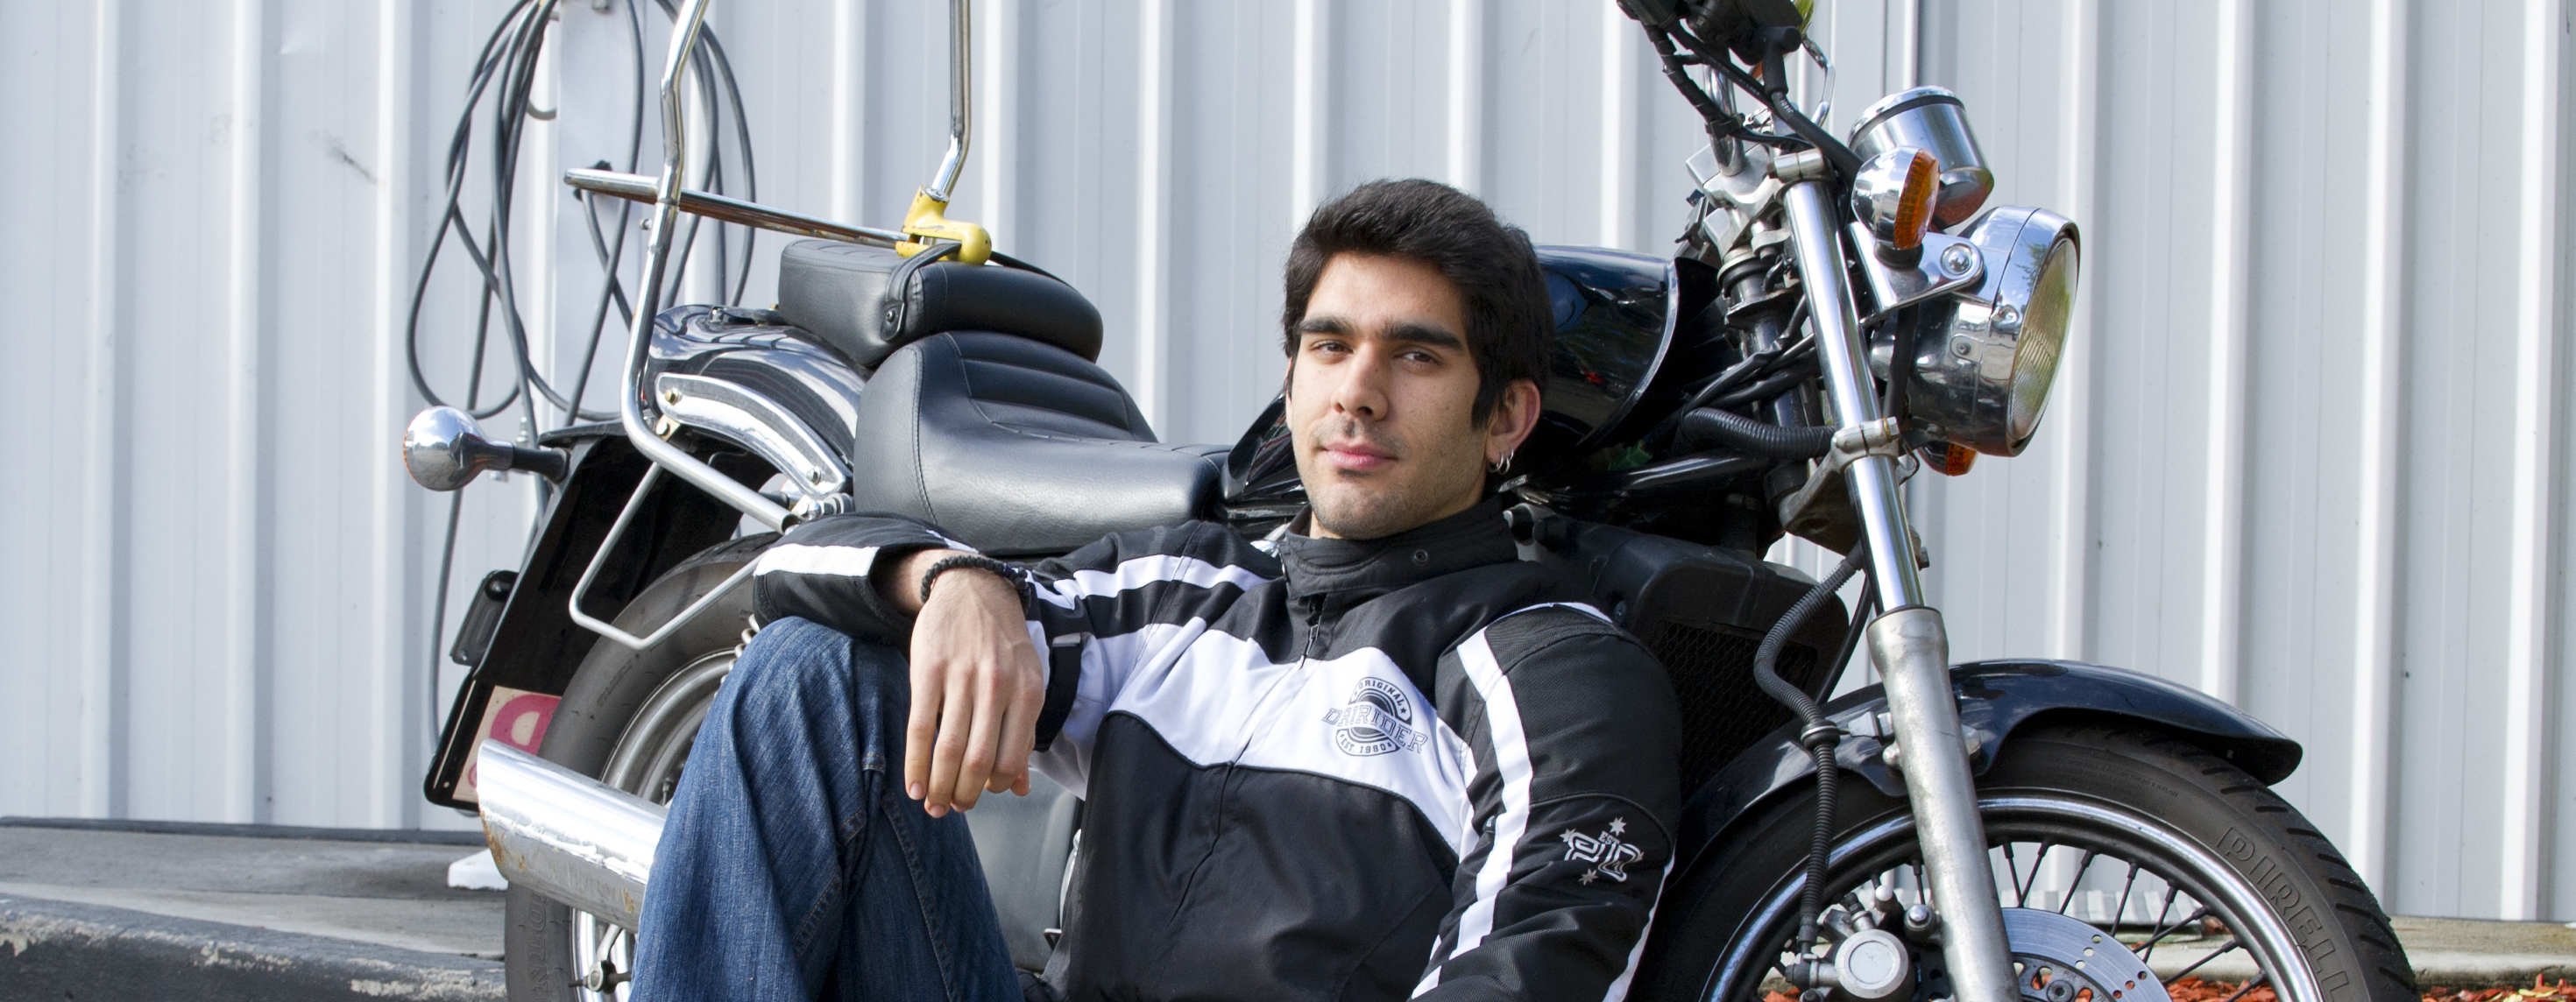 Young man leans against motorcycle